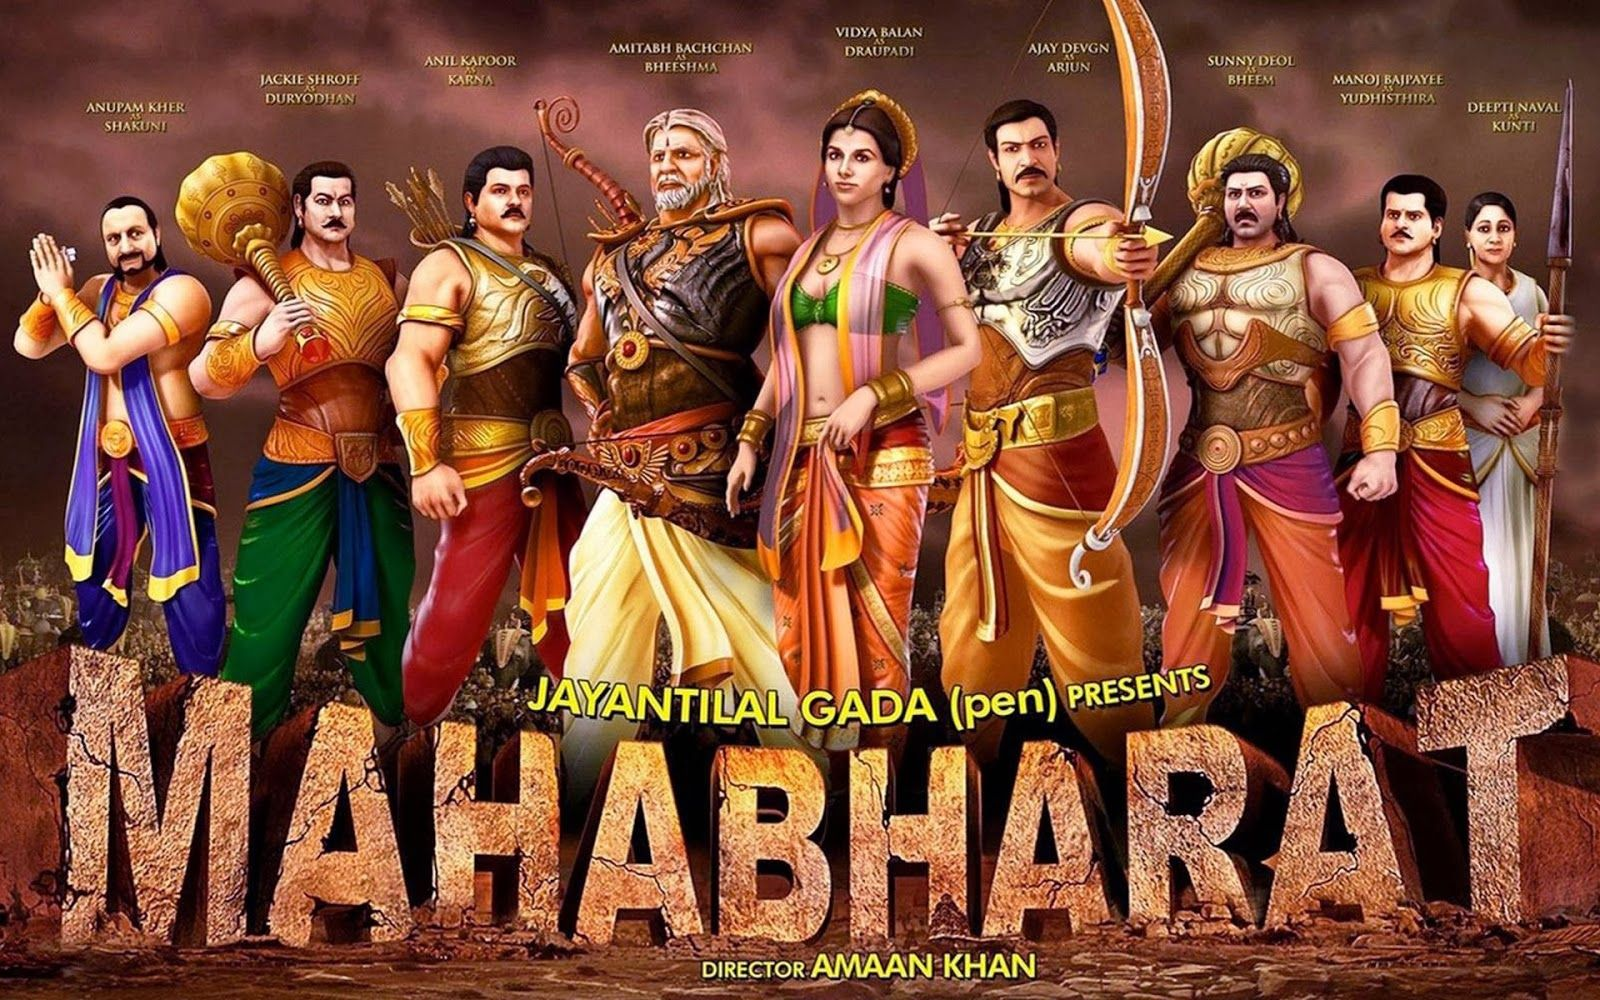 Bollywood and filmi fairy tales and legends animated